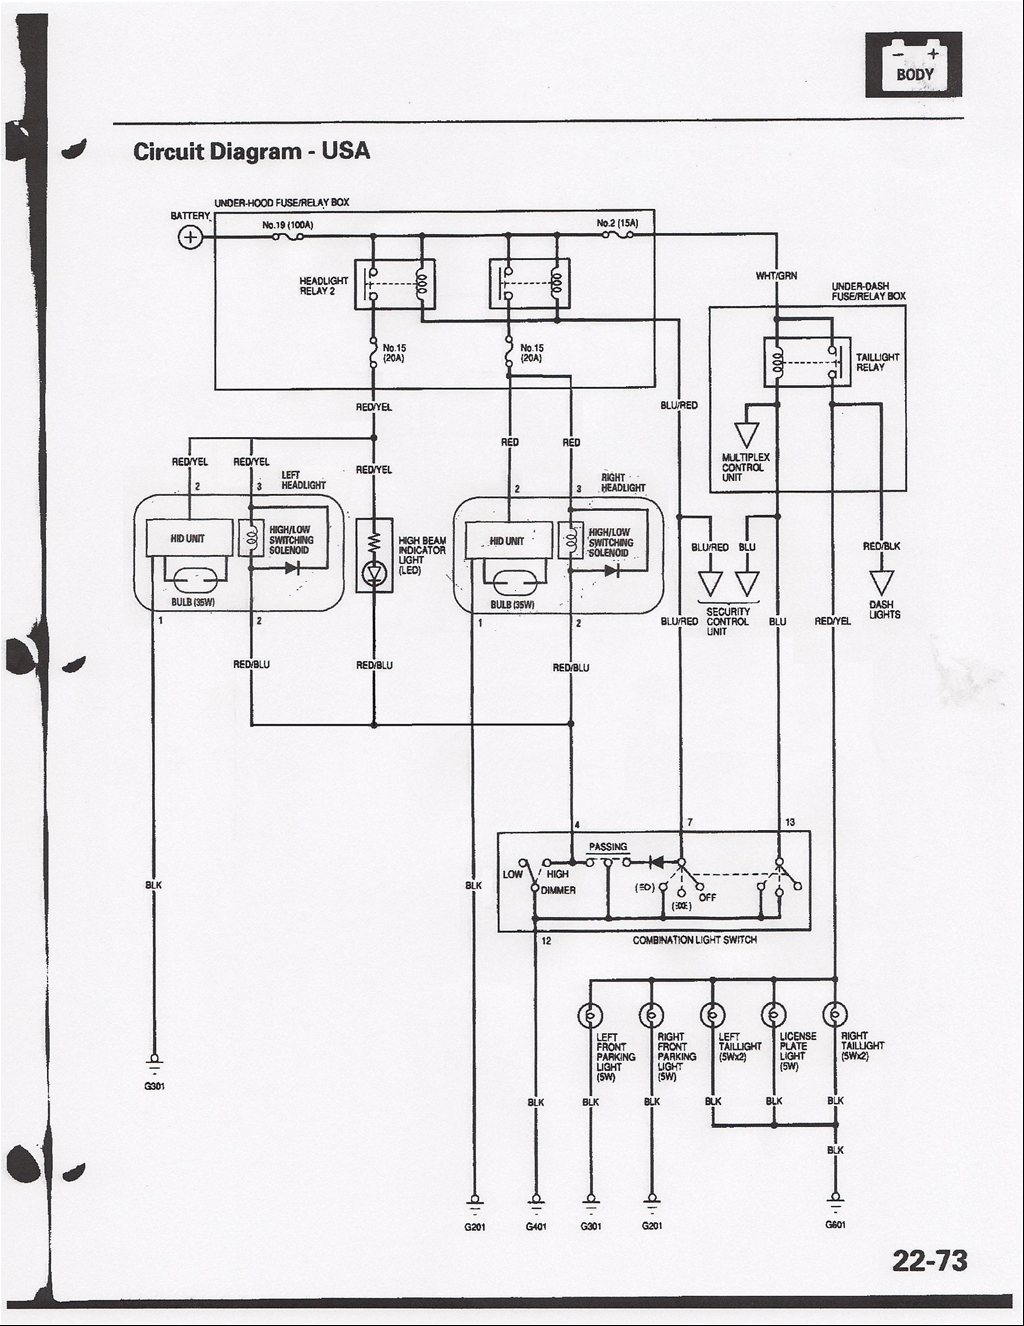 Honda Civic Headlight Switch Diagram